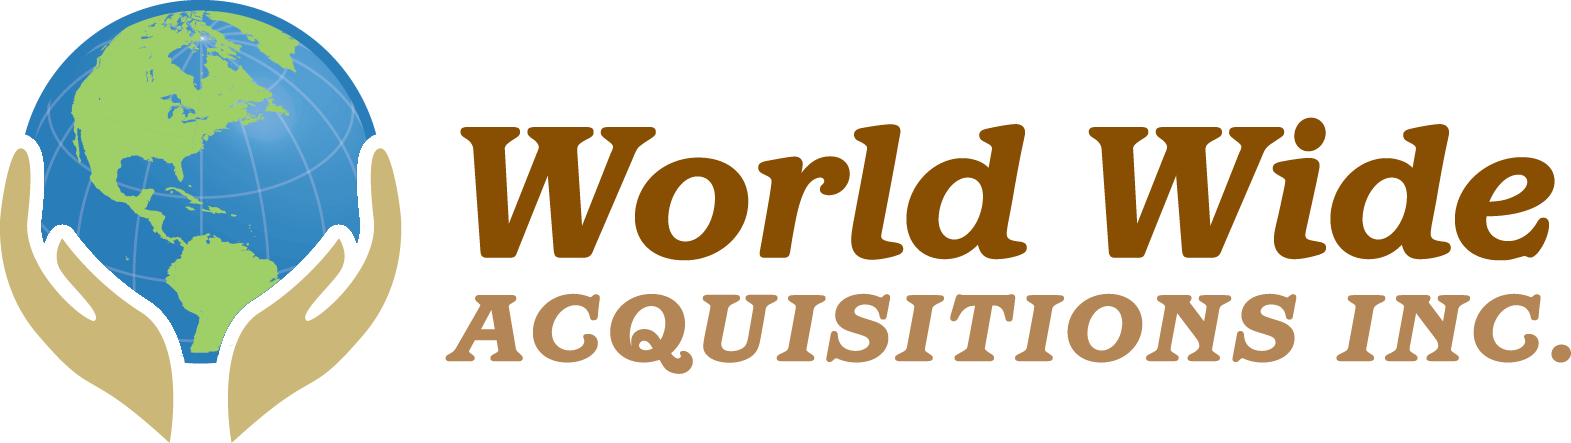 World Wide Acquisitions Inc.